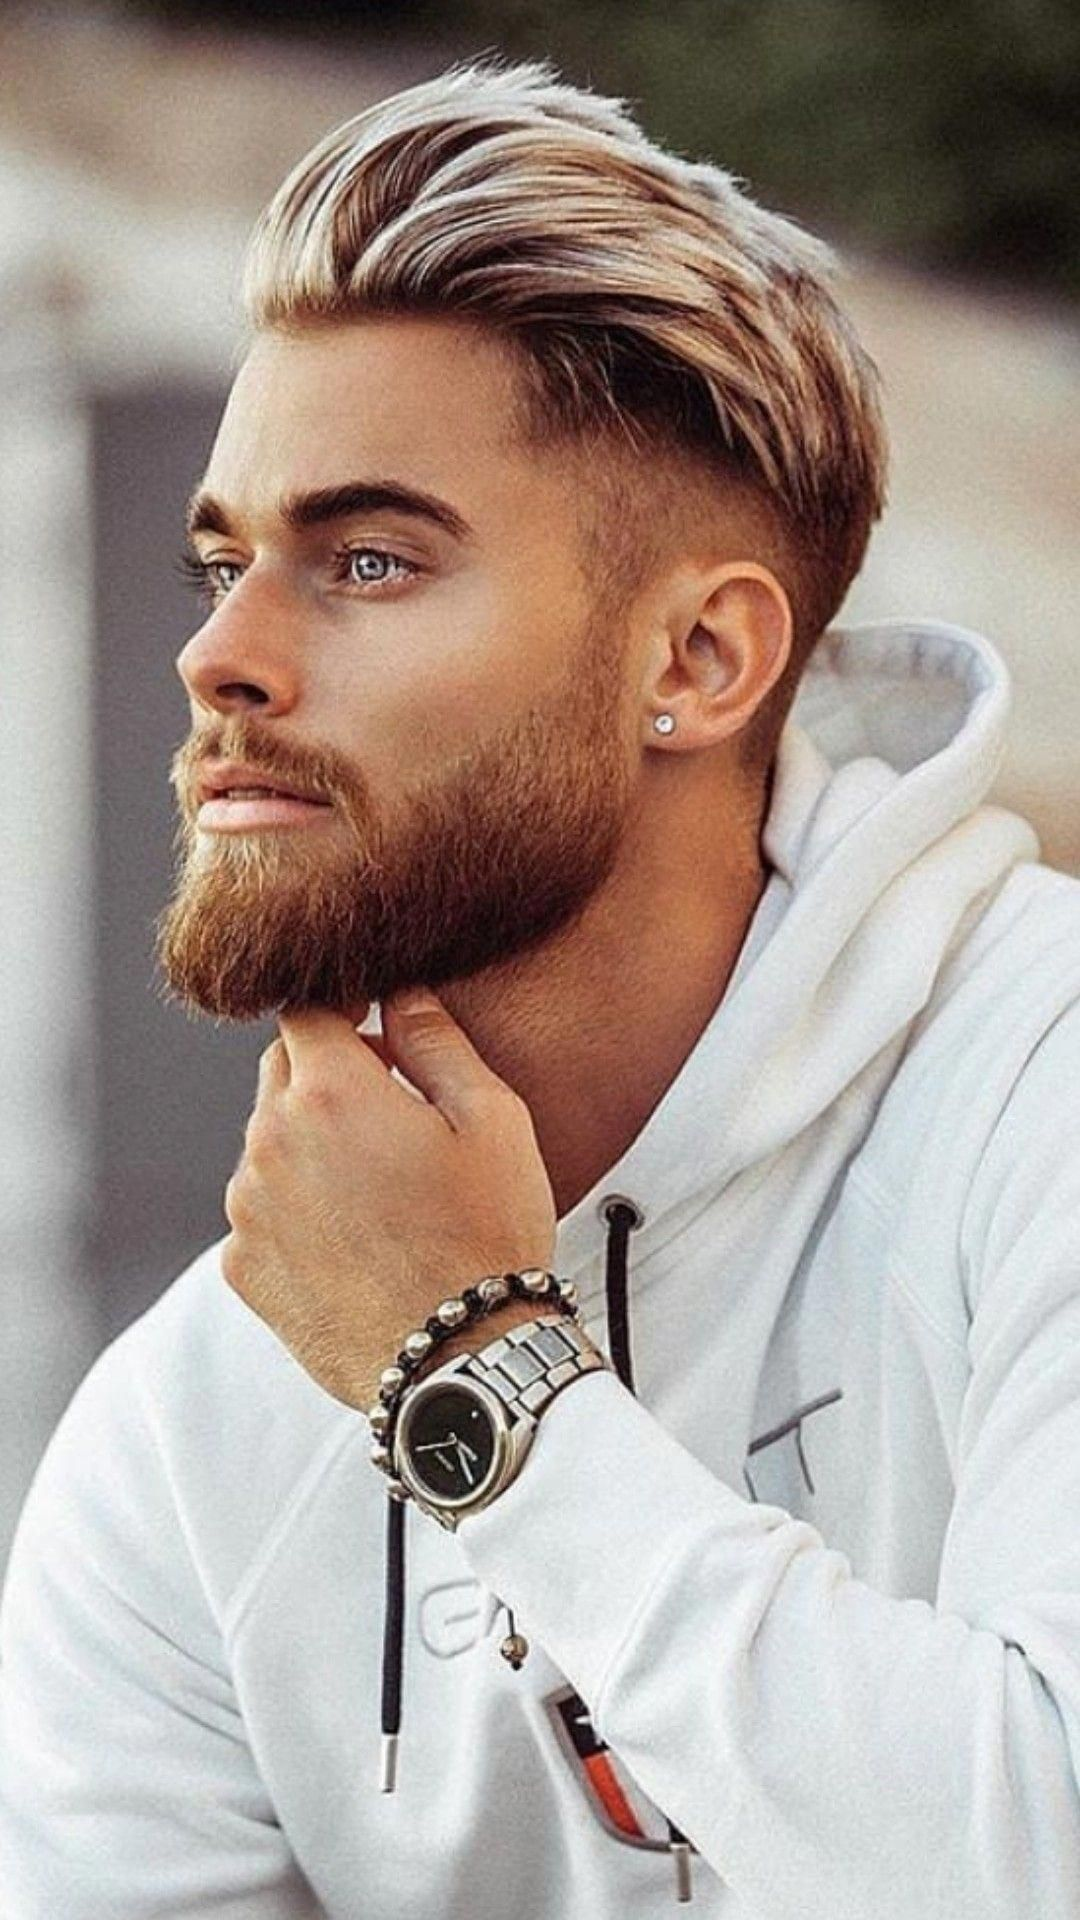 13 Fashionable Medium Length Hairstyles For Men S You Must Try Now Menshairstyles Mens Haircuts Short Medium Beard Styles Mens Hairstyles Medium